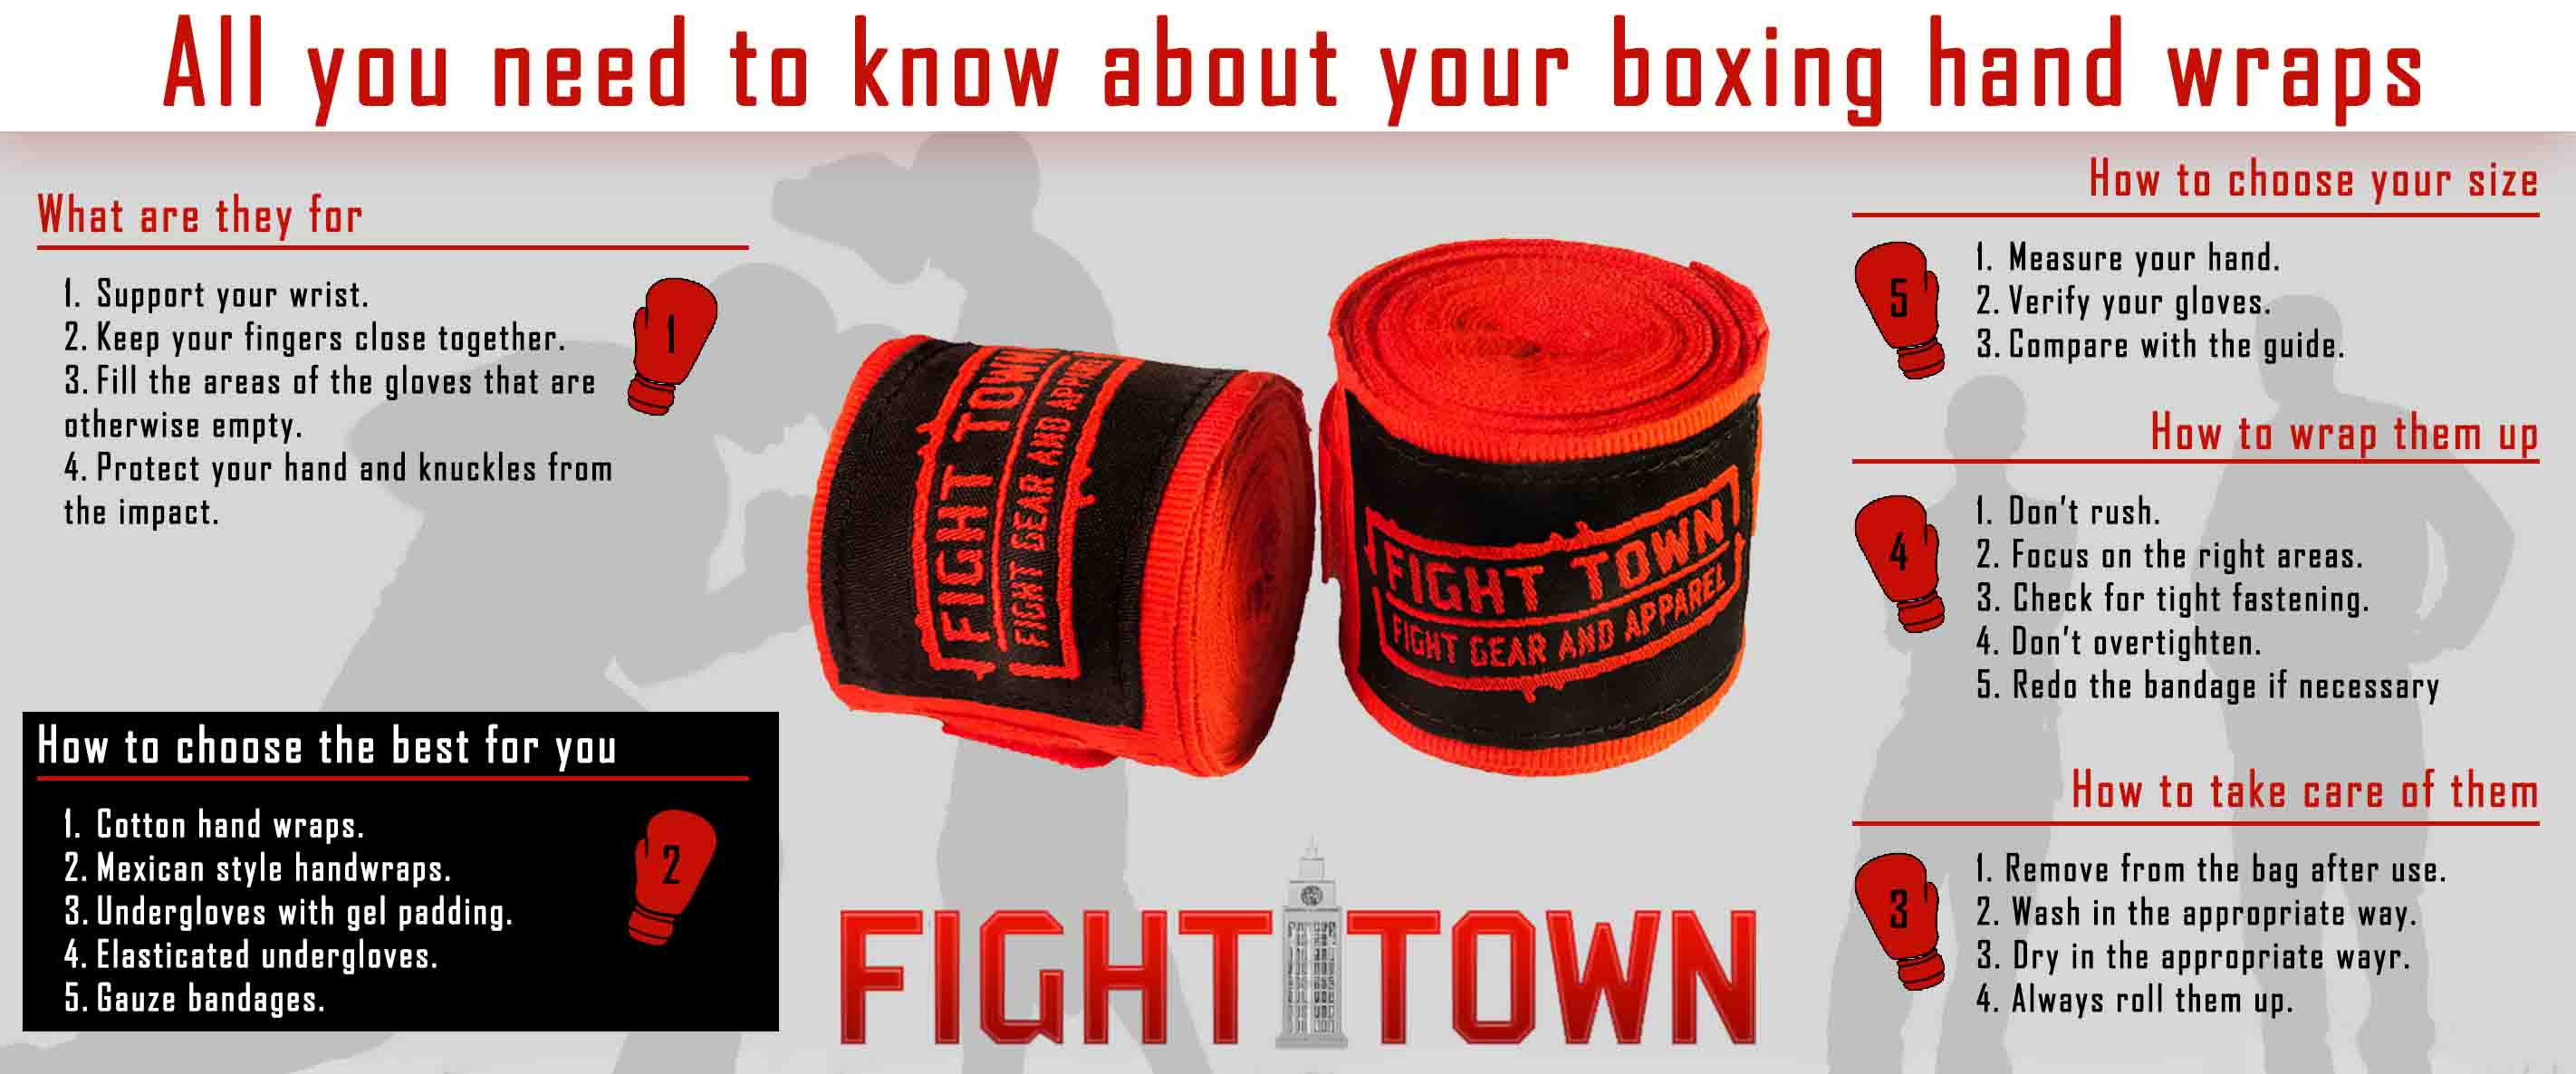 How to choose boxing hand wraps